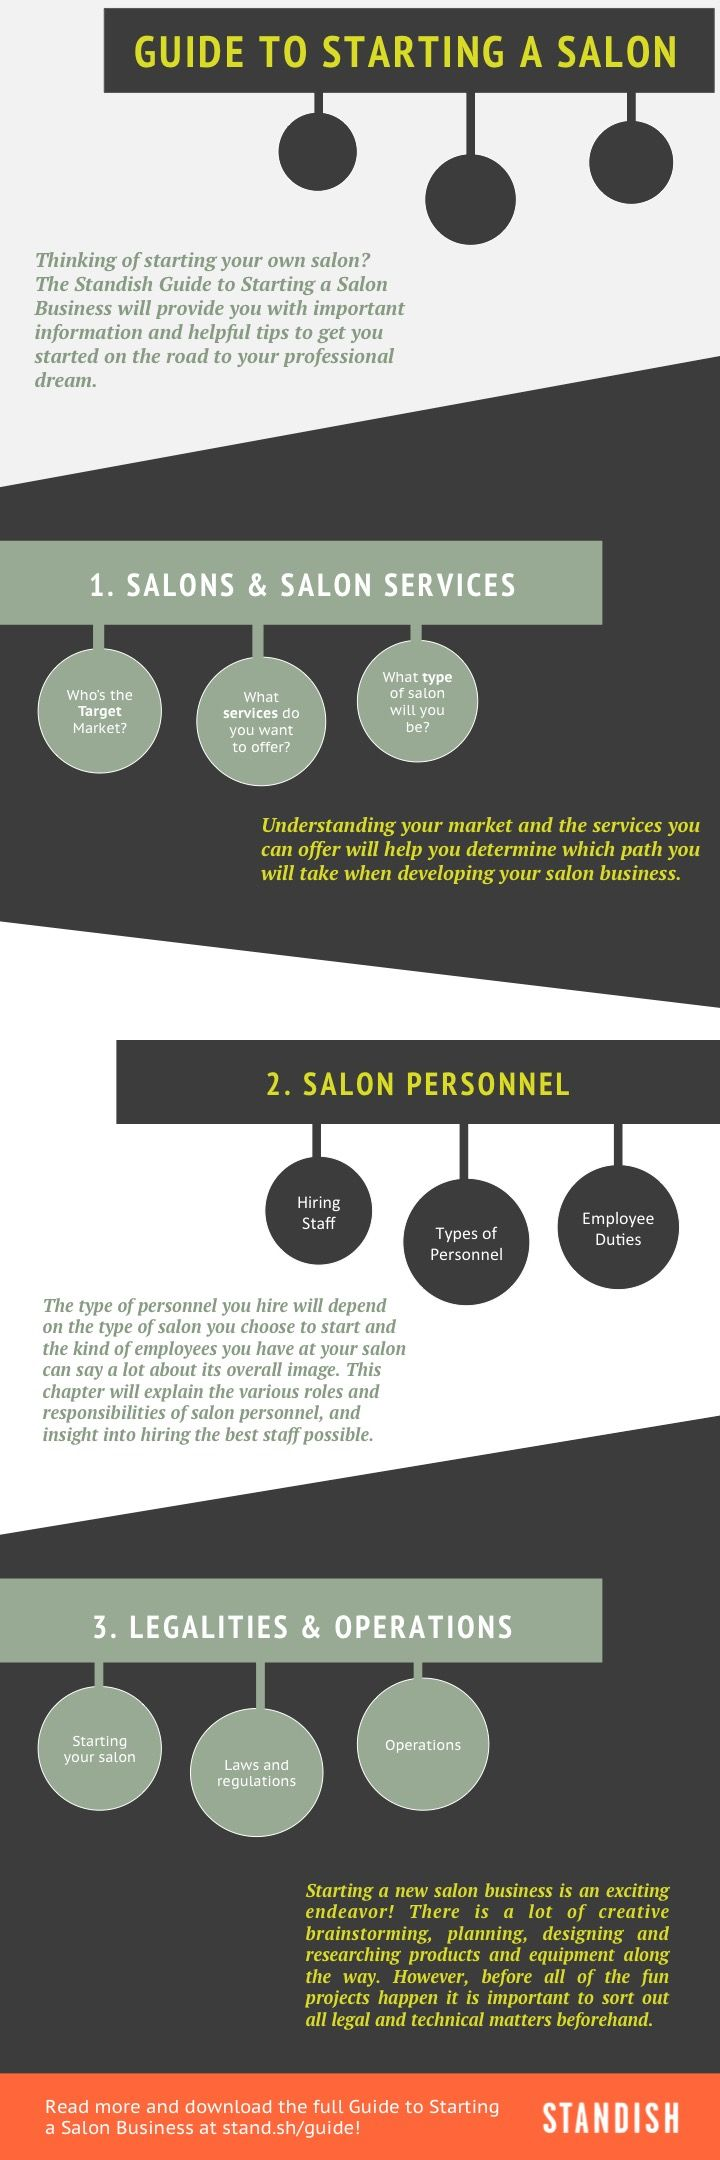 25 best ideas about tanning salons on pinterest tanning for Salon data marketing